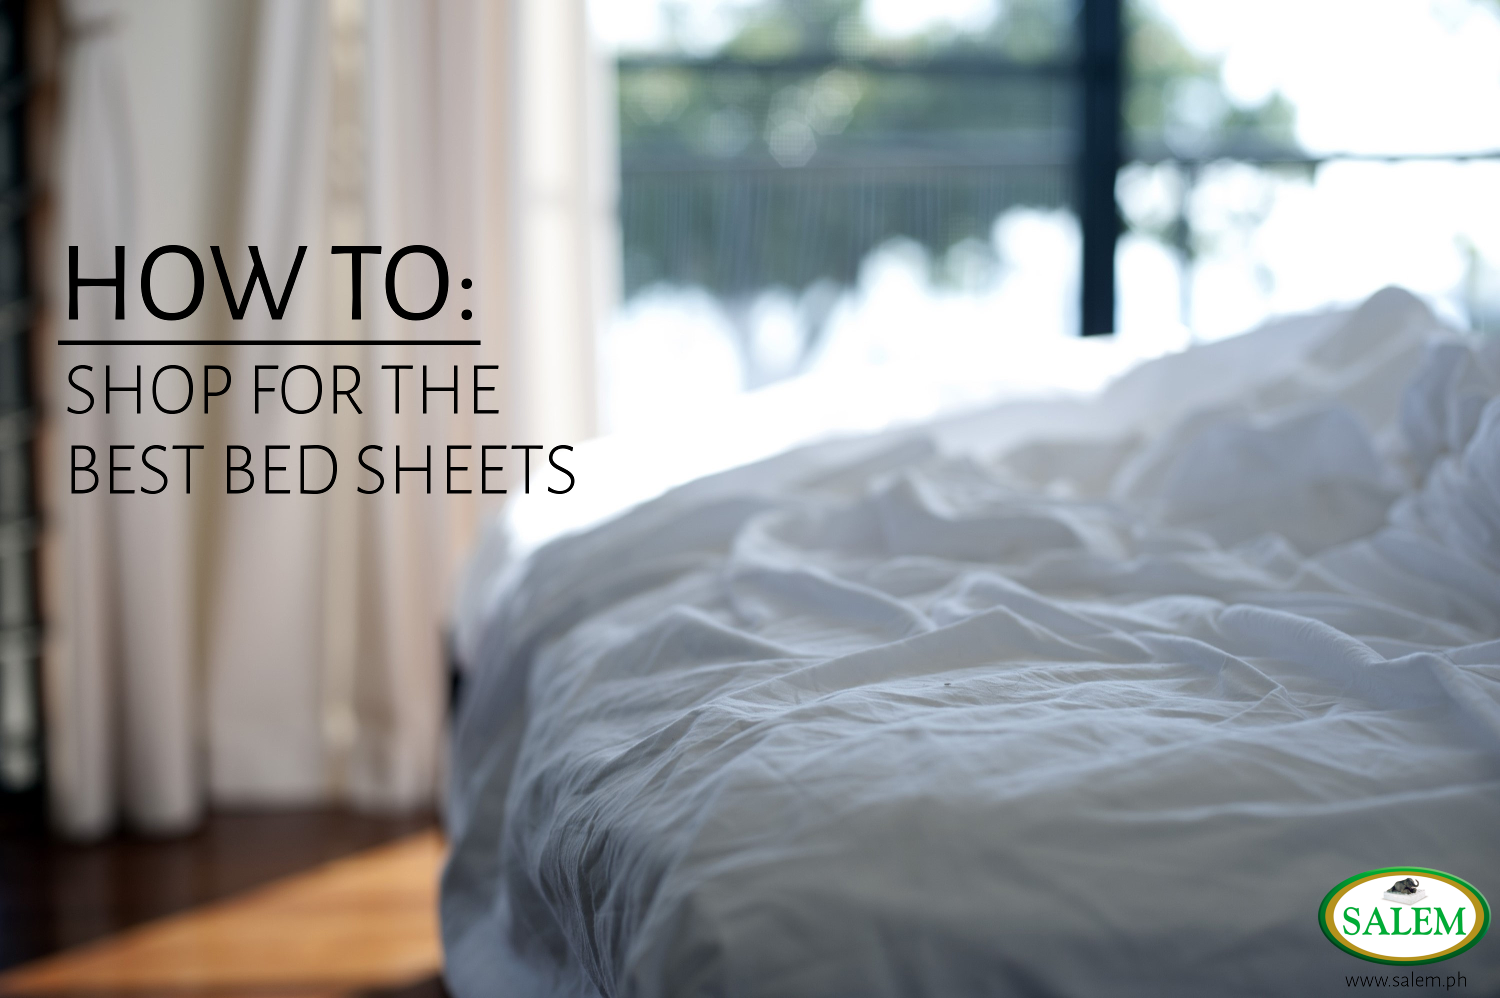 Sure, A Comfortable And Quality Mattress Will Lull You To Deep Slumber, But  A Scratchy Bed Sheet ...